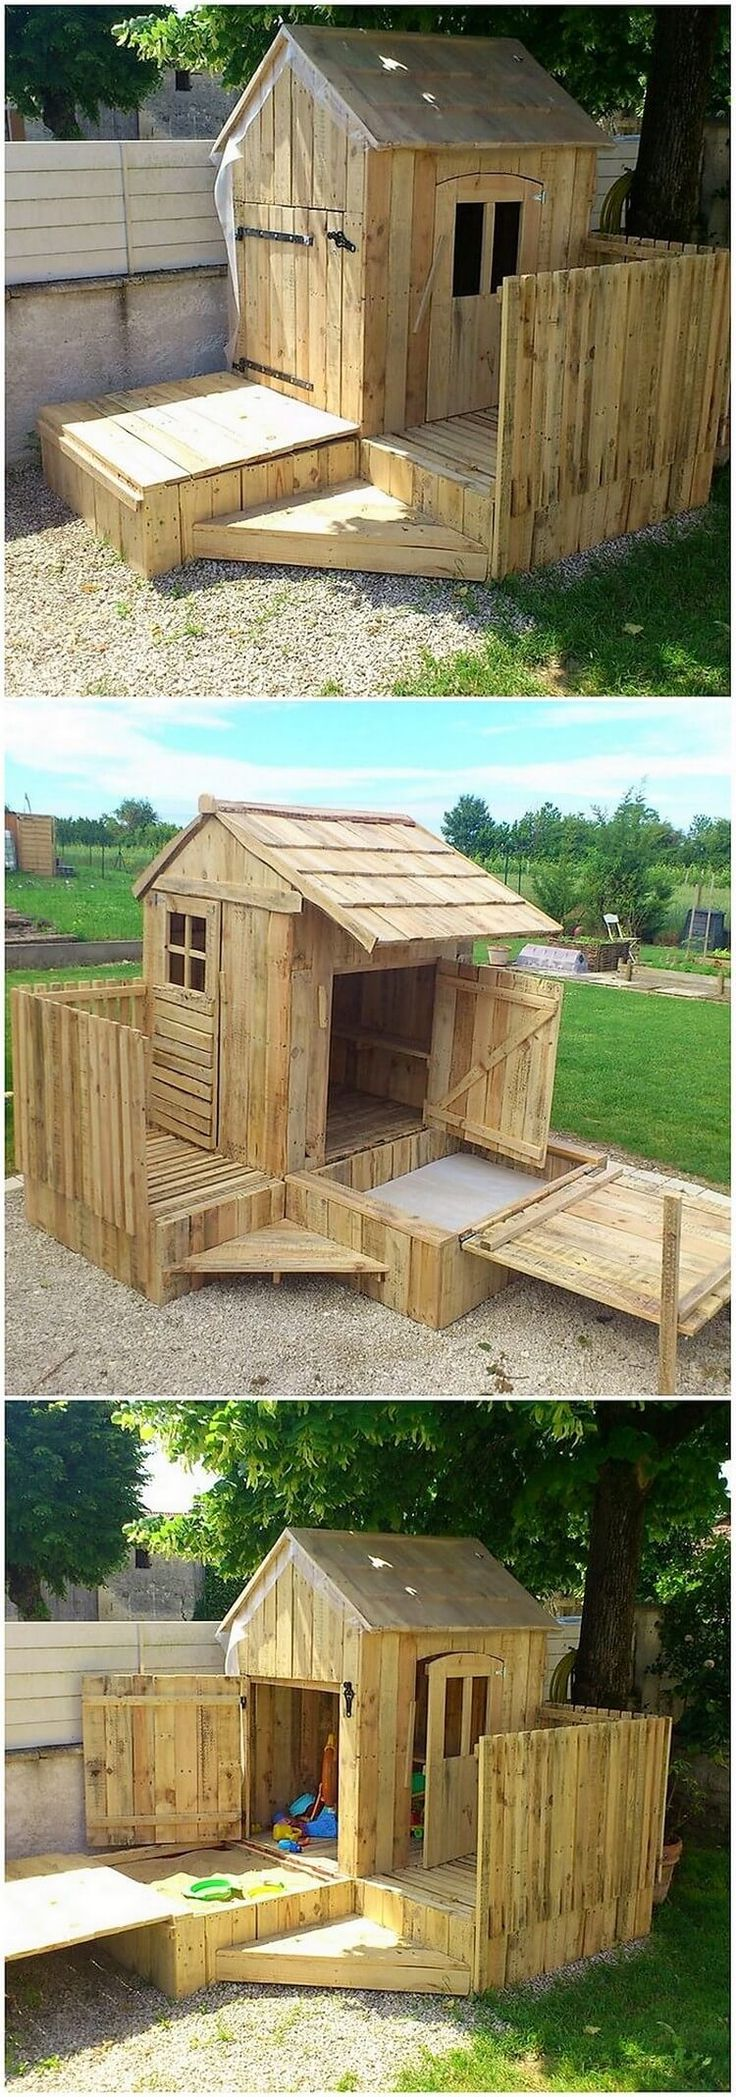 This unique wood pallet creation is some sort of playhouse areas which you can purposely use for so many innovative services. This creation is beige build into the playhouse or the garden cabin form which your kids love to spend much of their vacation time inside it.